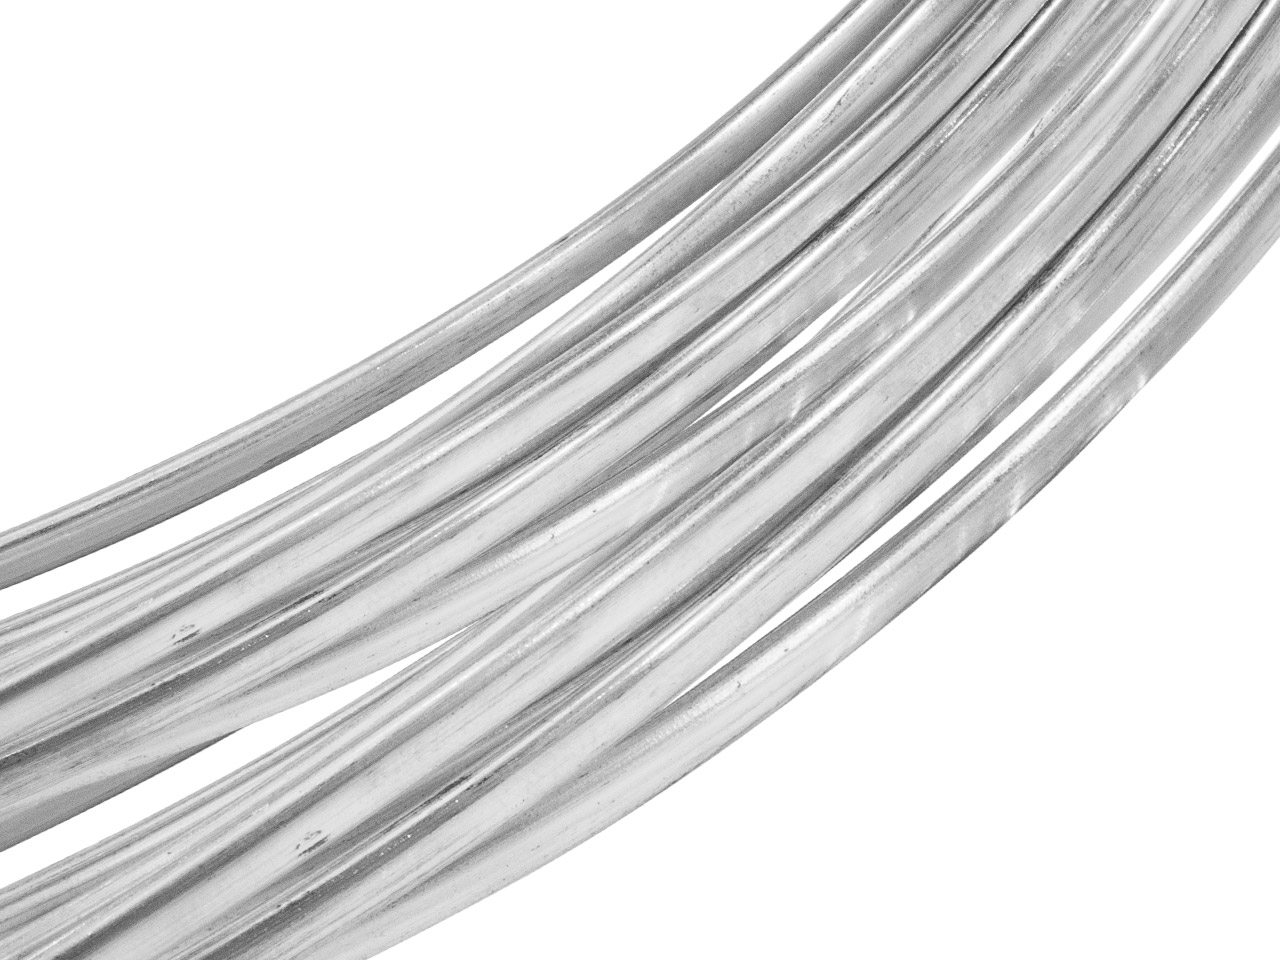 Sterling Silver Oval Wire 2.5mm X 1.7mm - cooksongold.com